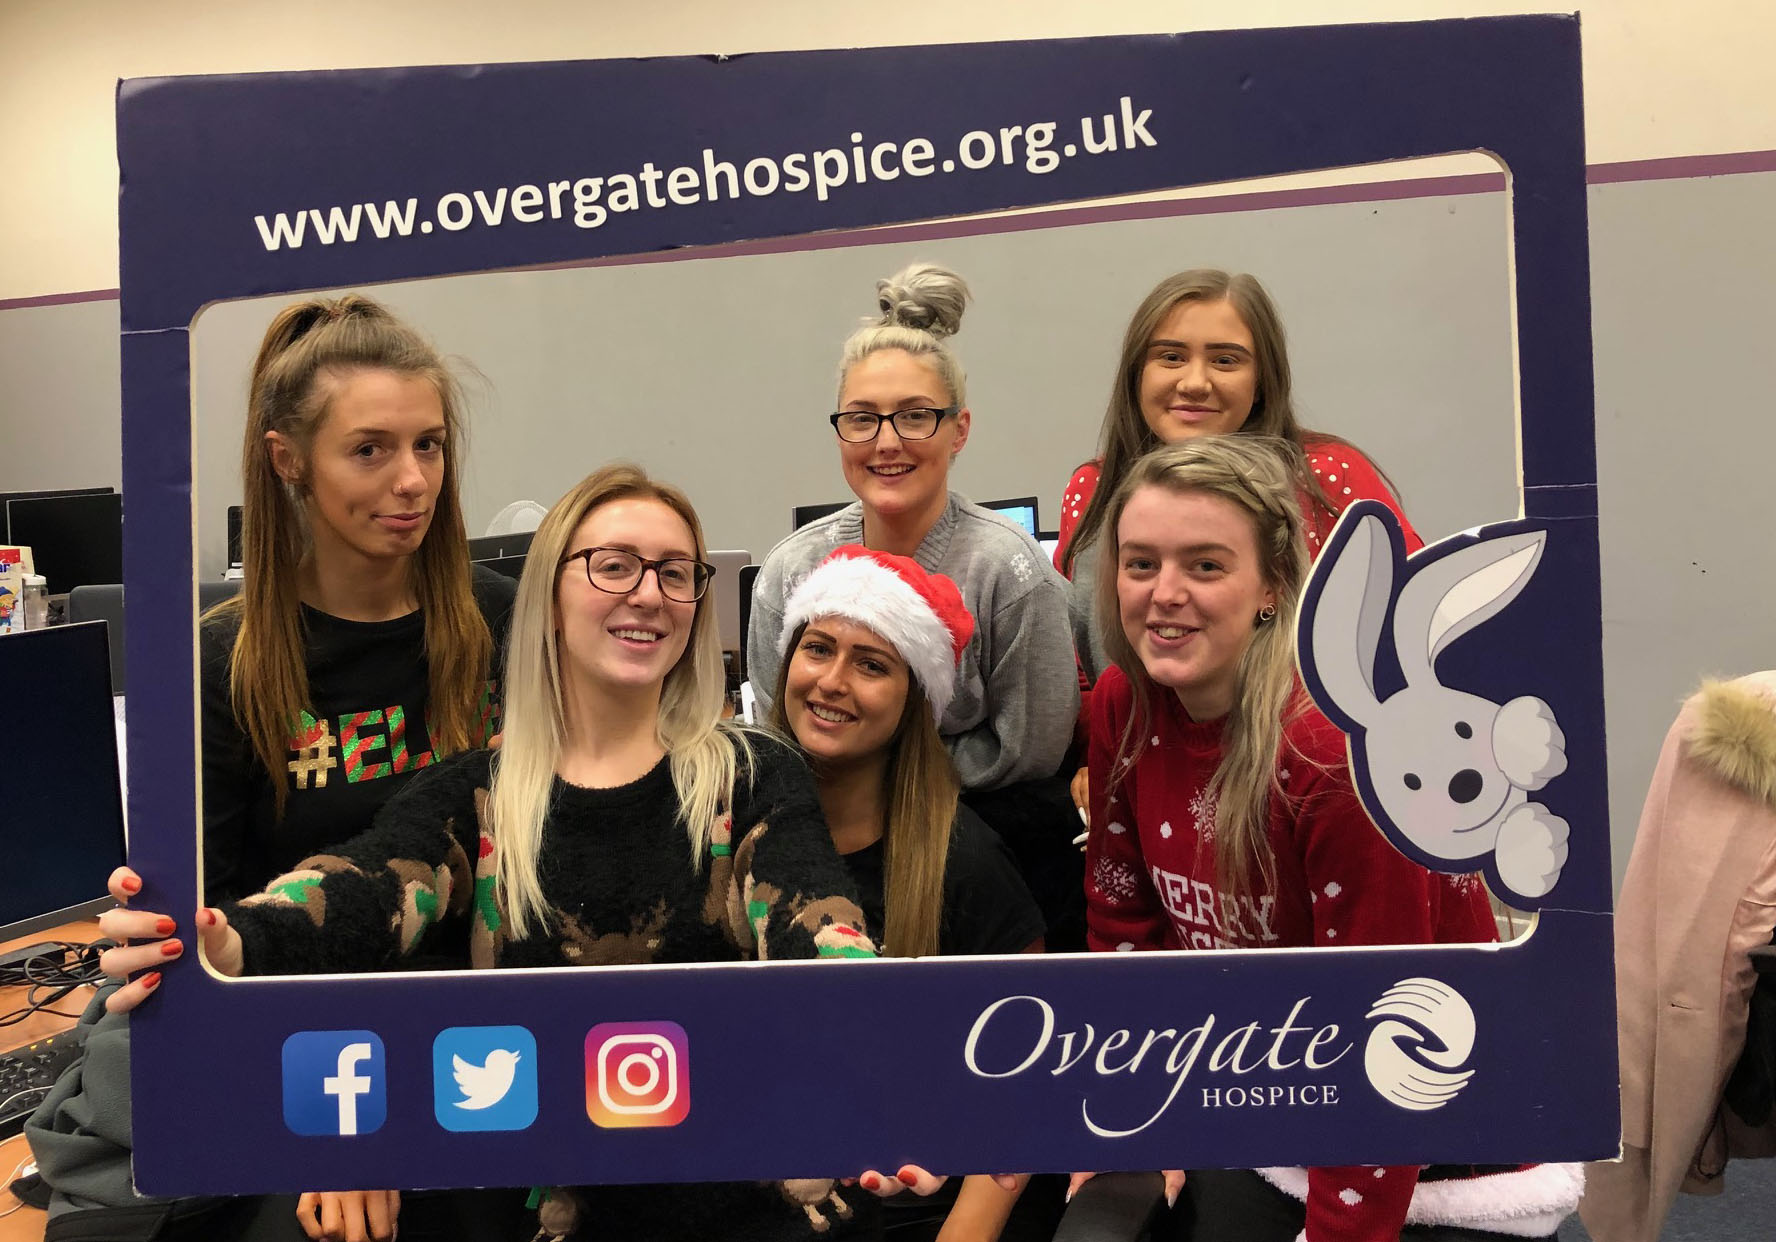 Christmas arrives as staff raise money for Overgate Hospice on Christmas Jumper Day